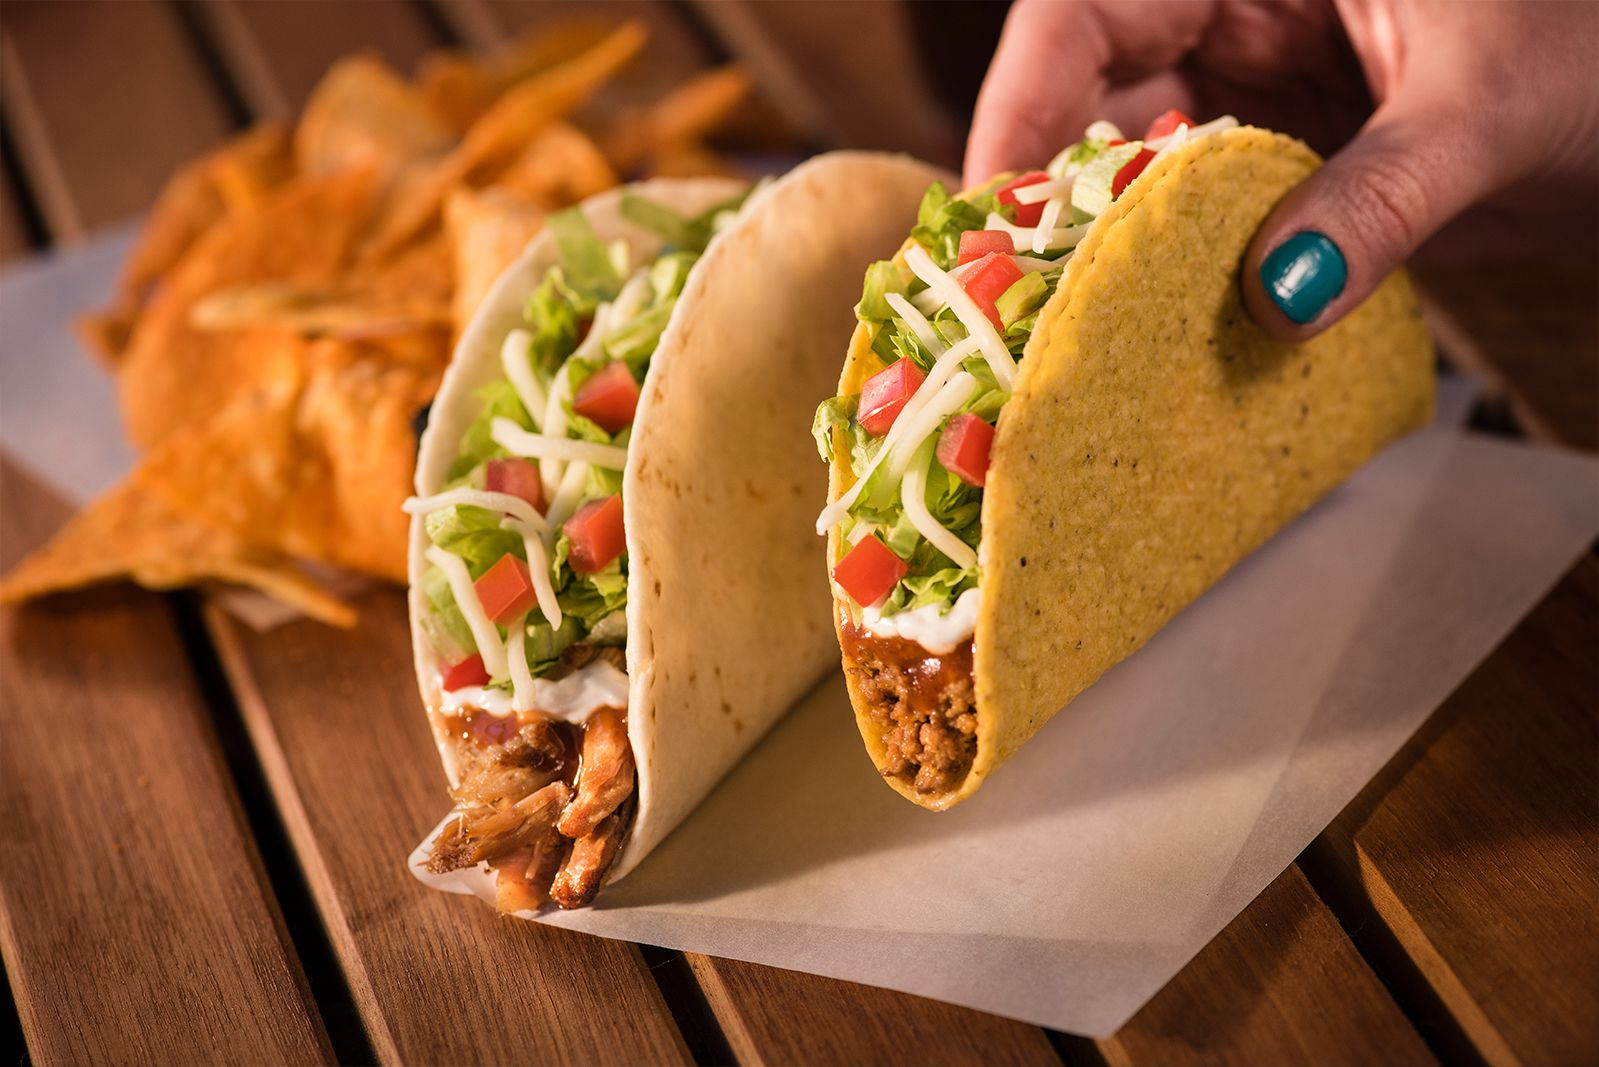 Taco Bell to open 100 restaurants across ANZ in 5 years | Inside Franchise Business